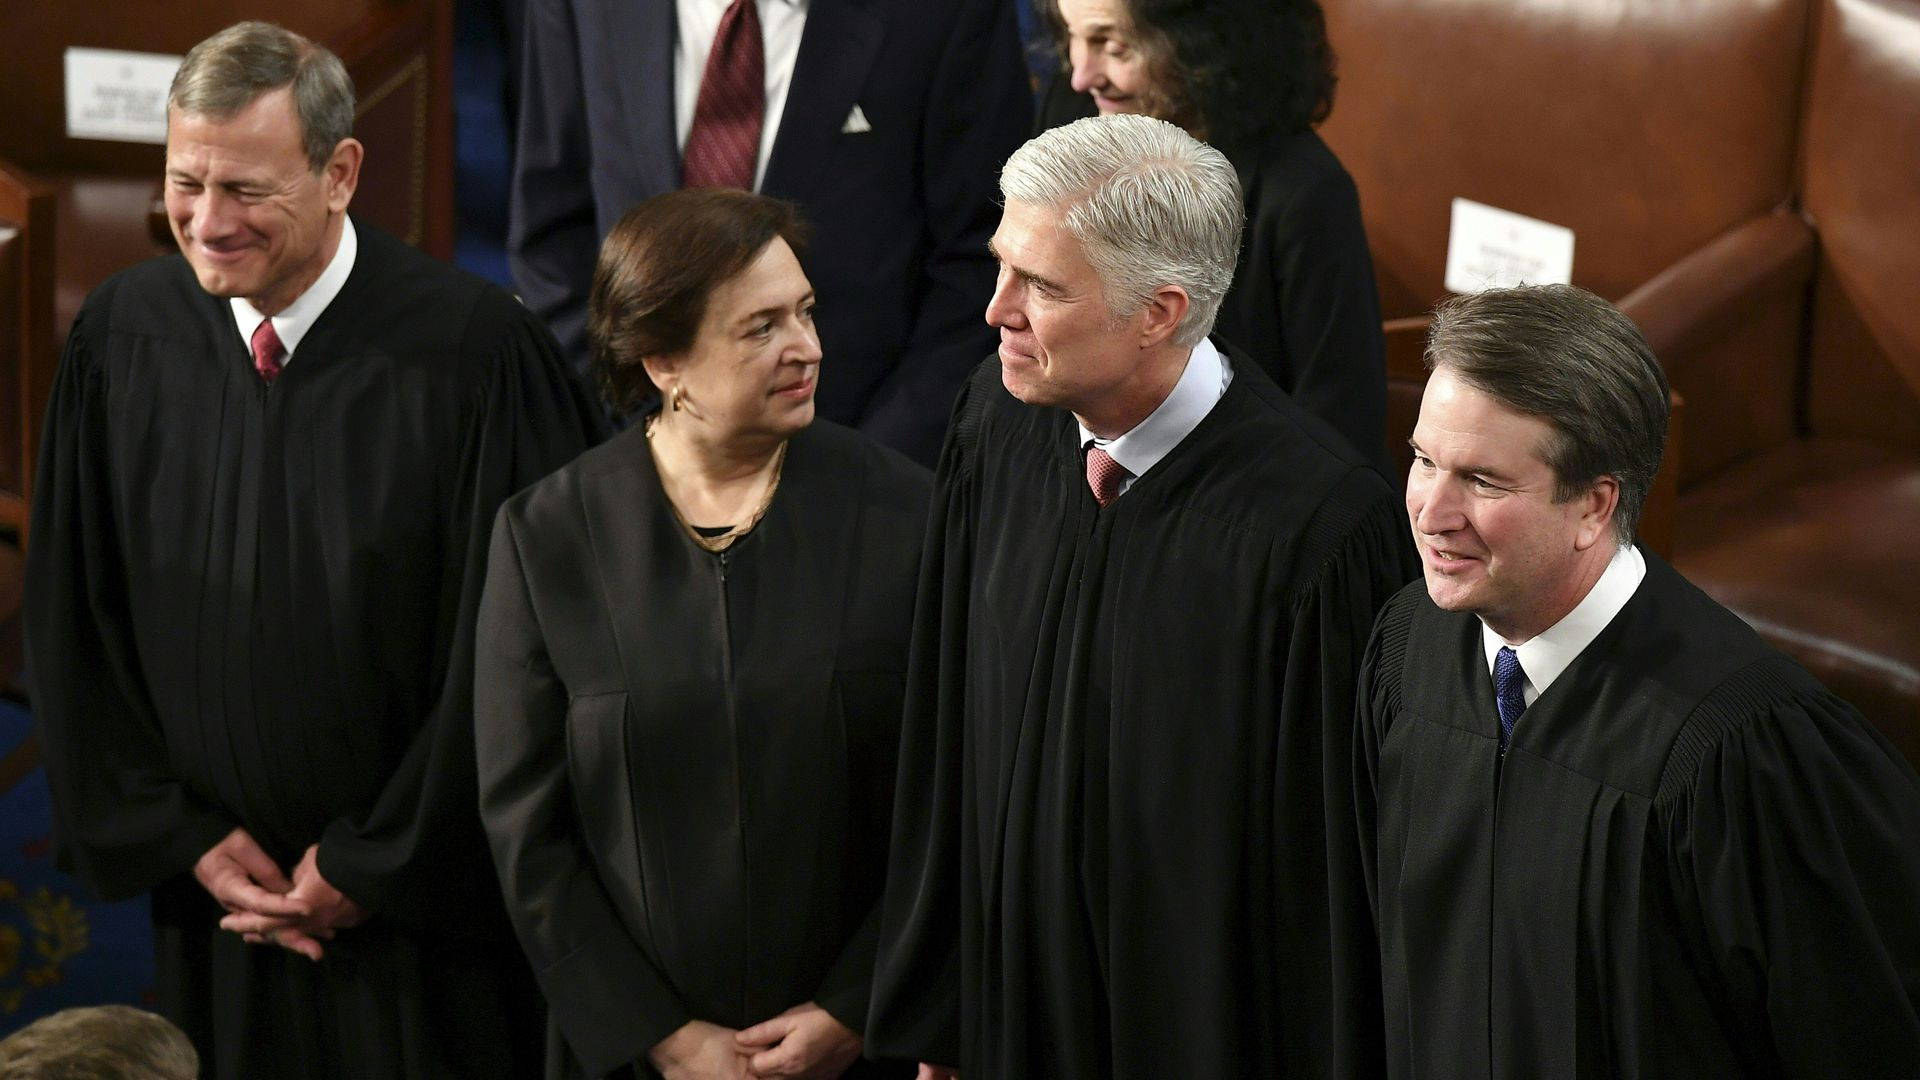 In this image, the Supreme Court justices stand in a line